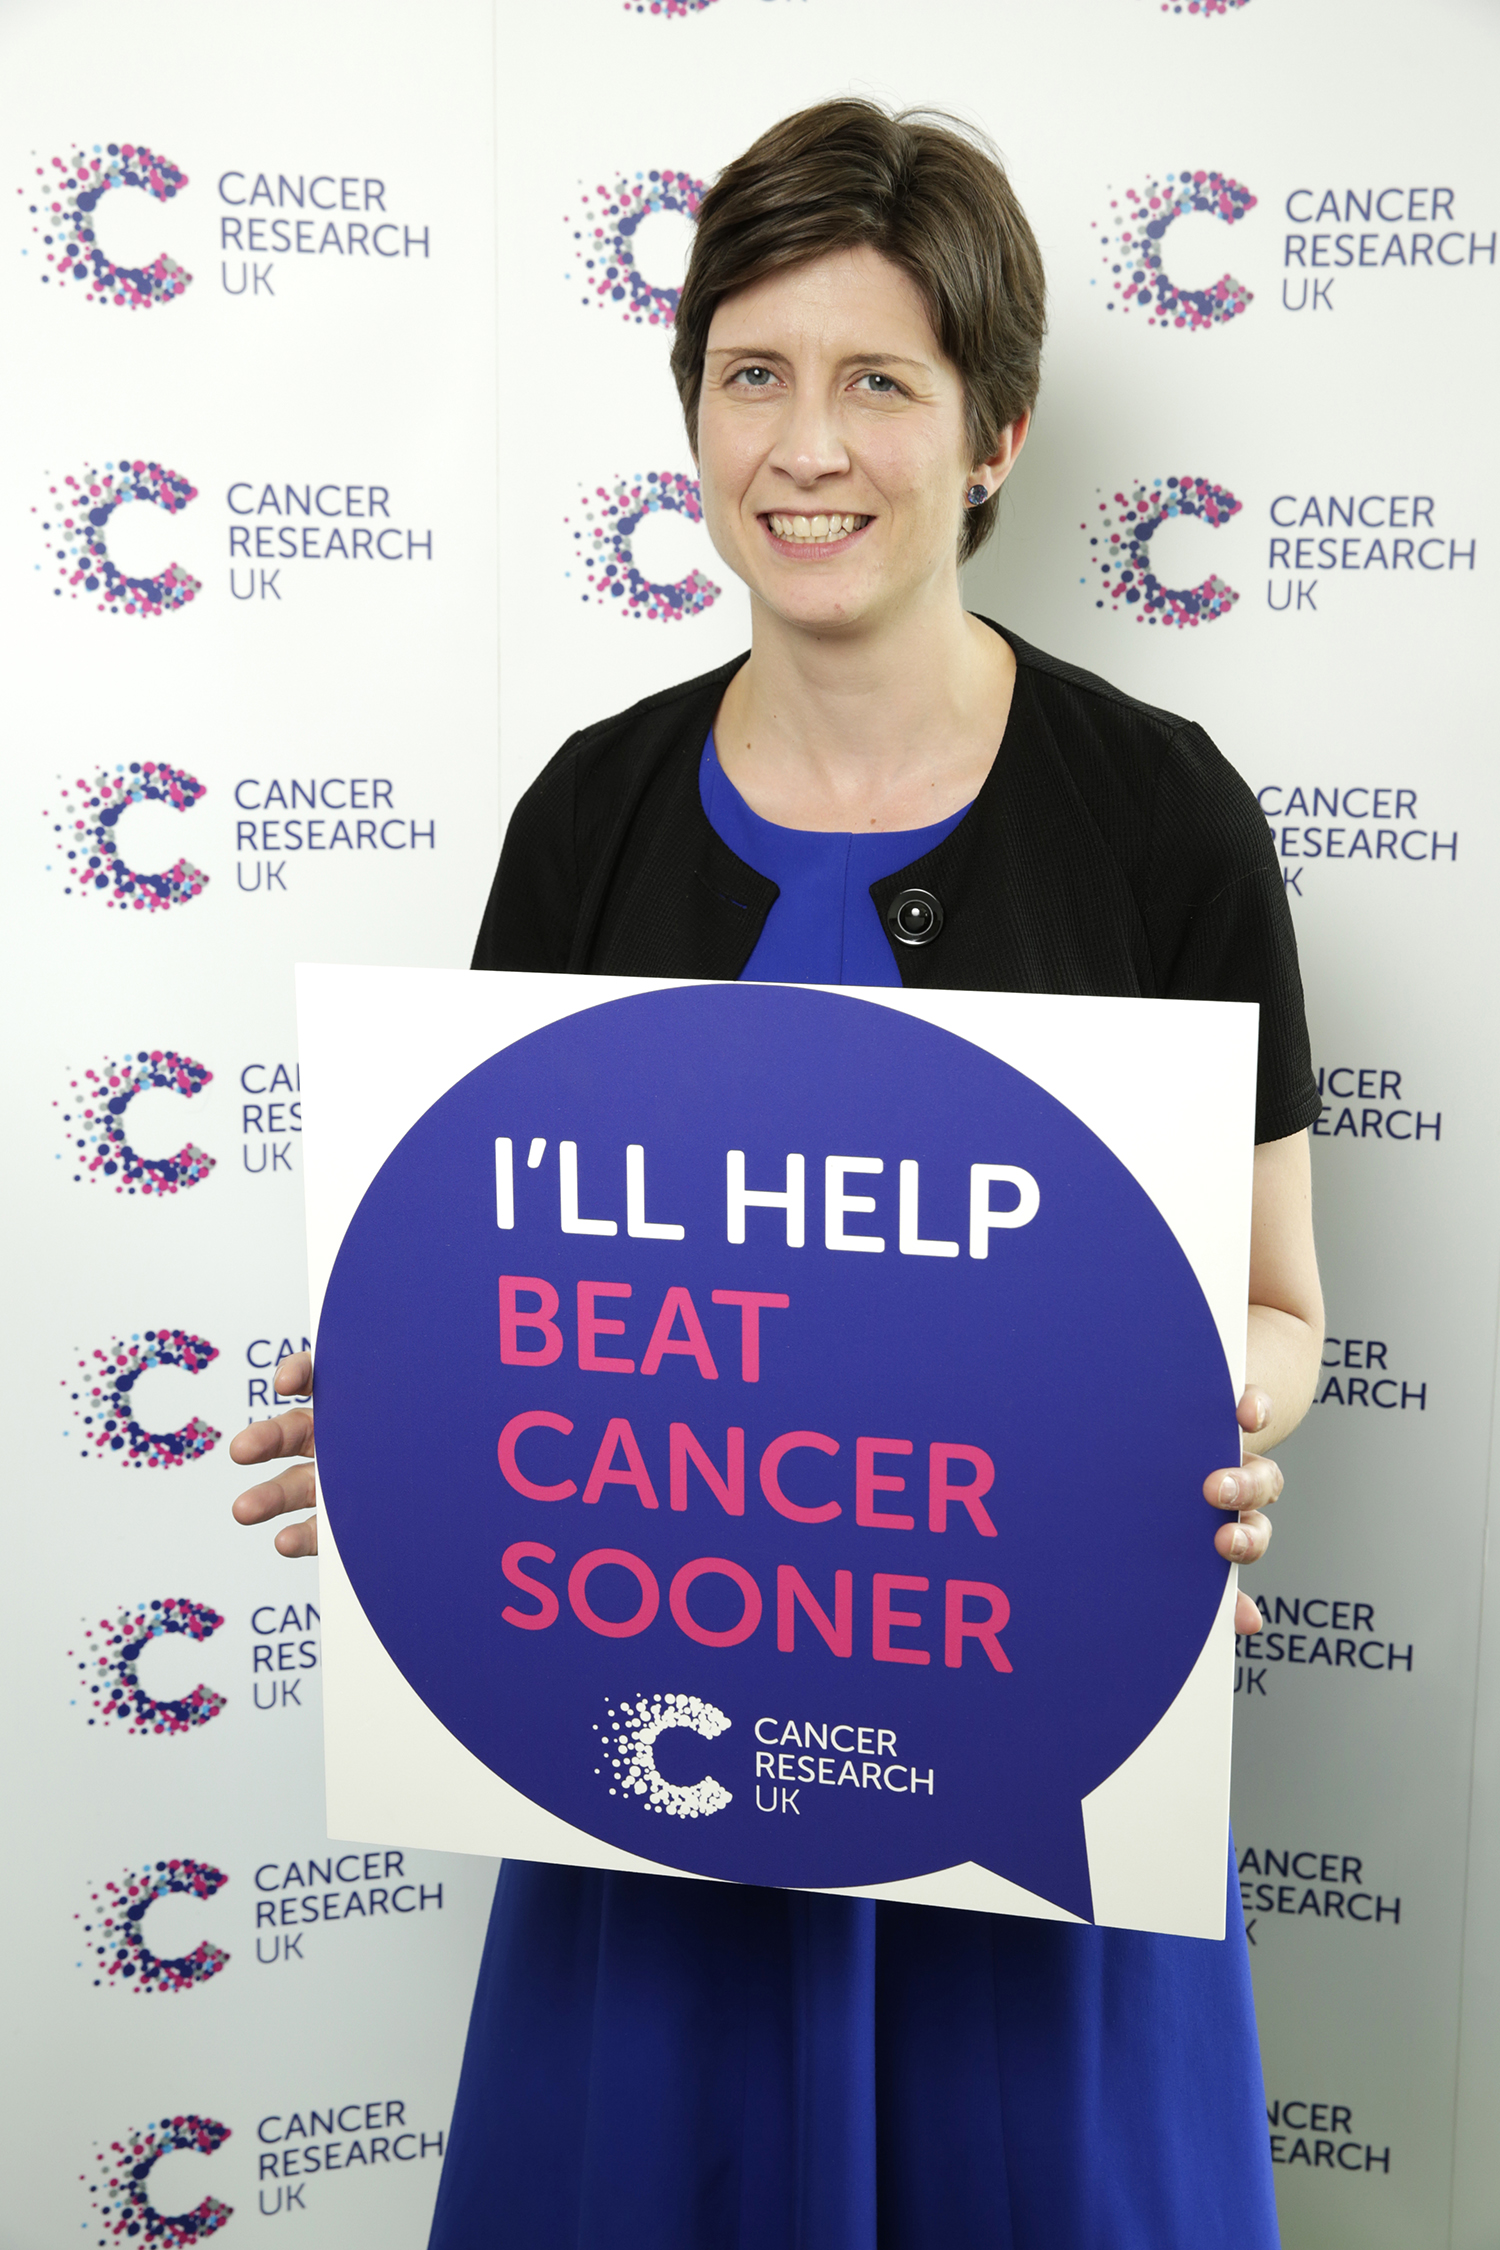 Alison Thewliss MP pledges to help beat cancer sooner